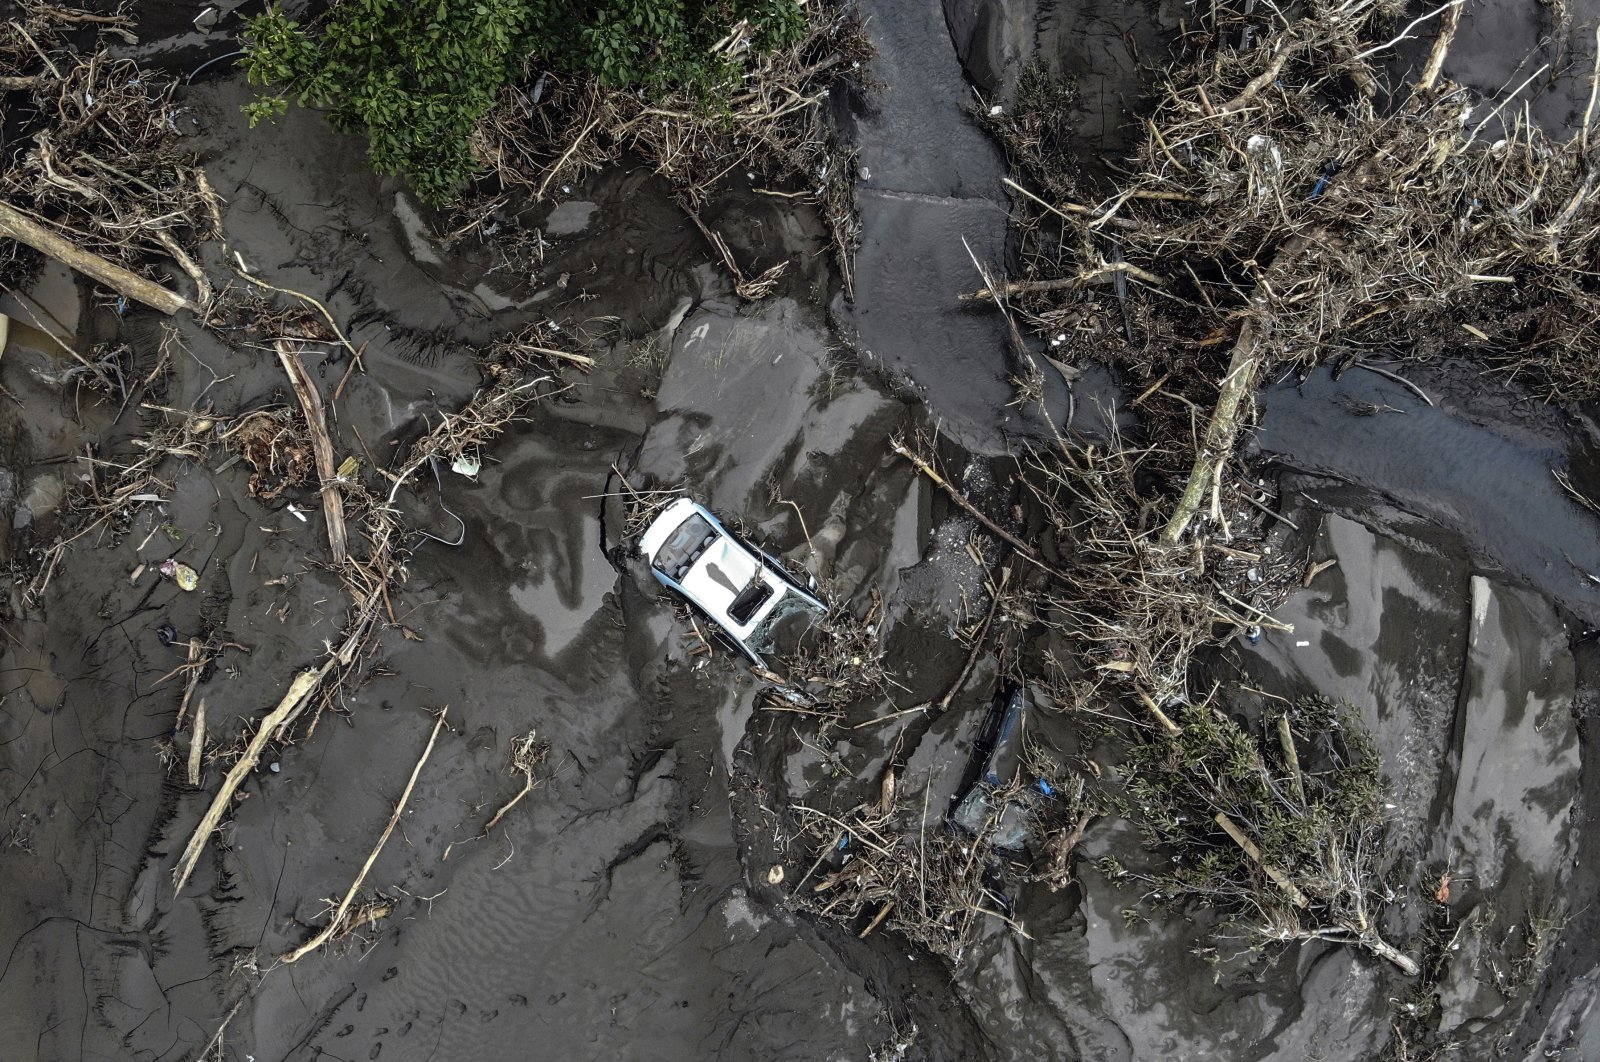 An aerial photo shows the destruction after floods and mudslides killed about three dozens of people, in Bozkurt town of Kastamonu province, Turkey, Aug. 13, 2021. (AP Photo)